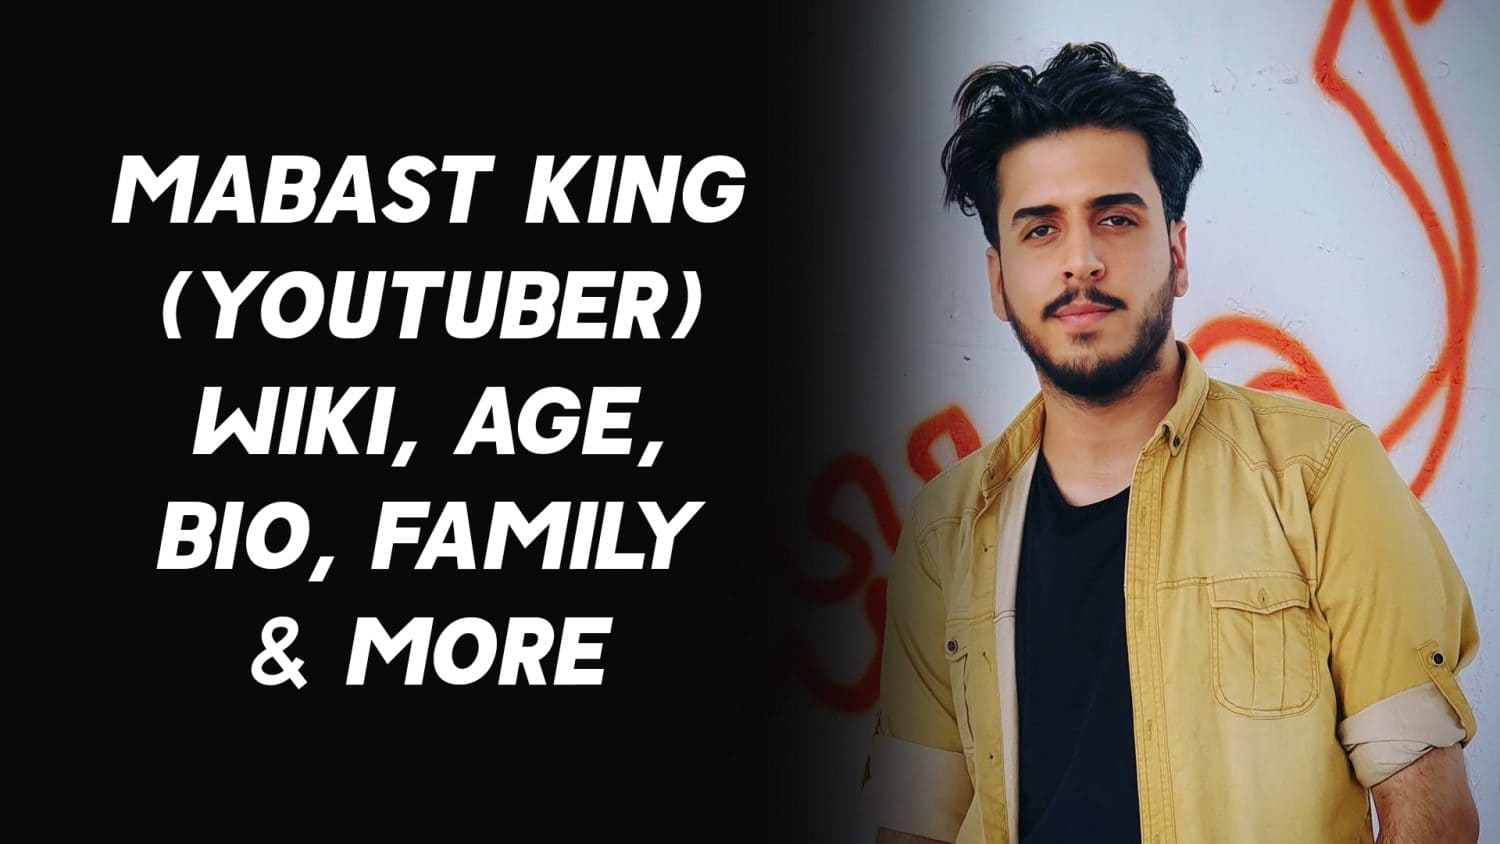 Mabast King (YouTuber) Wiki, Age, Bio, Family & More 1